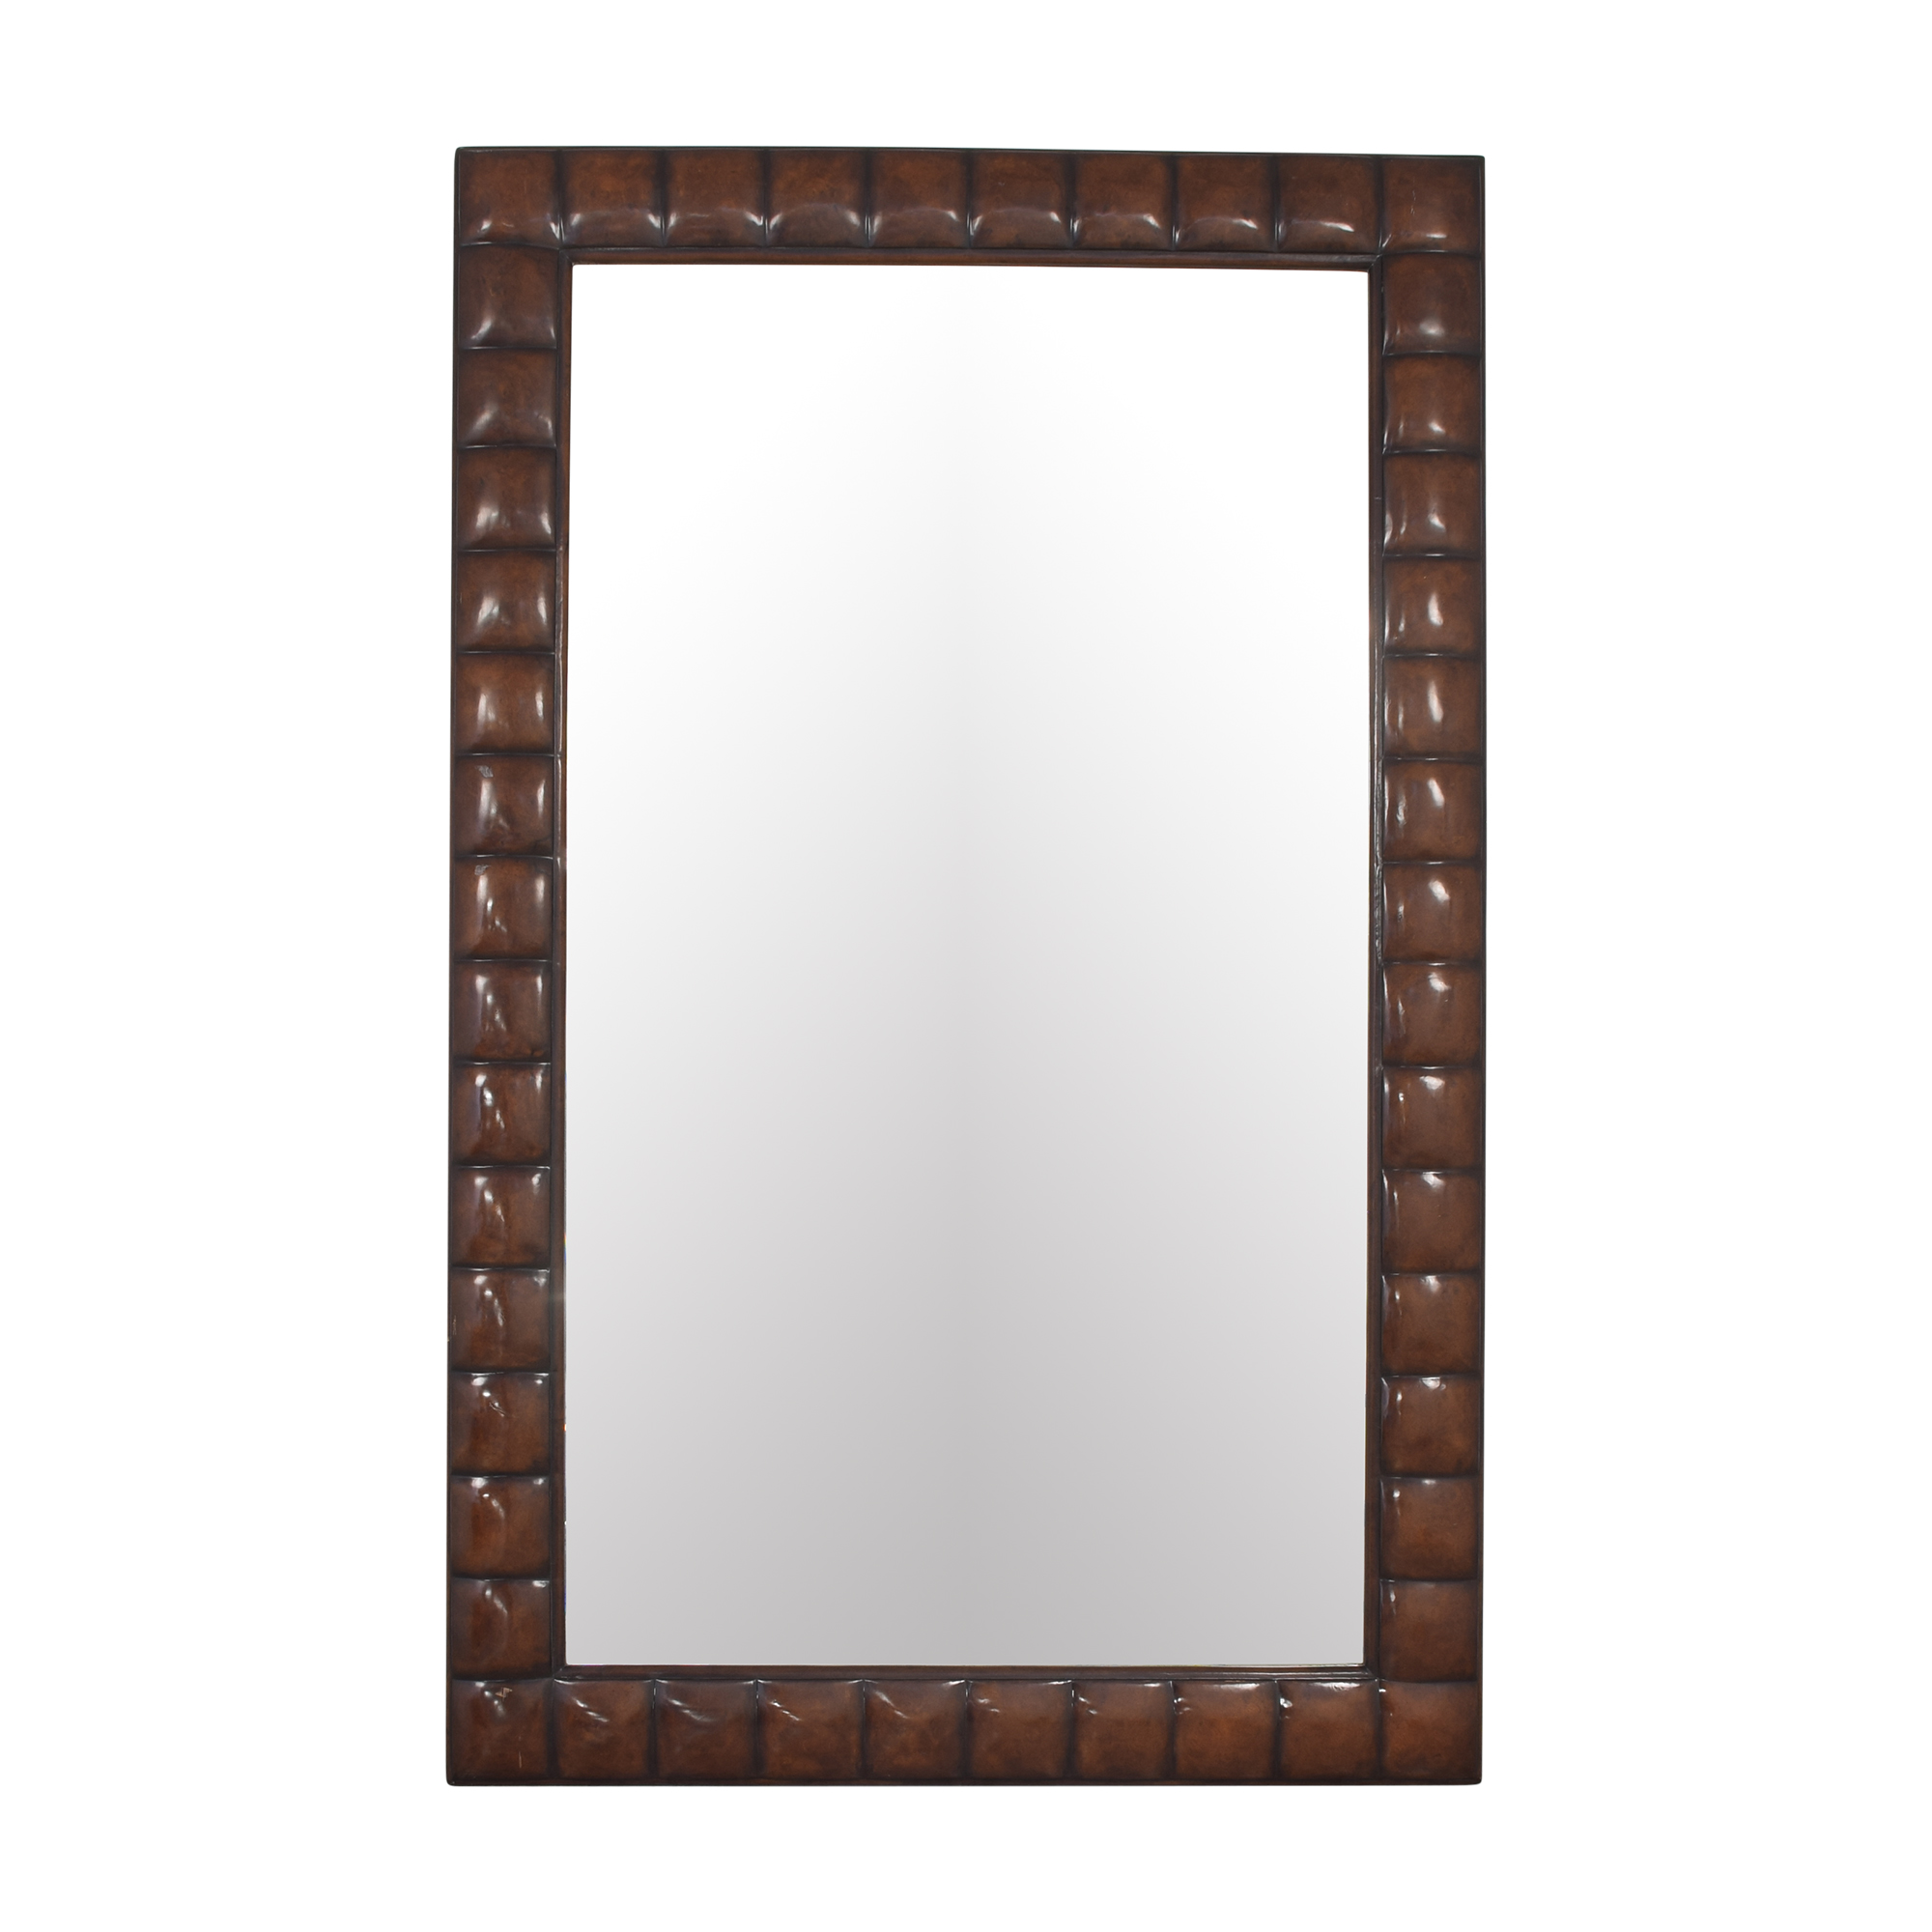 Extra Large Framed Floor Mirror second hand